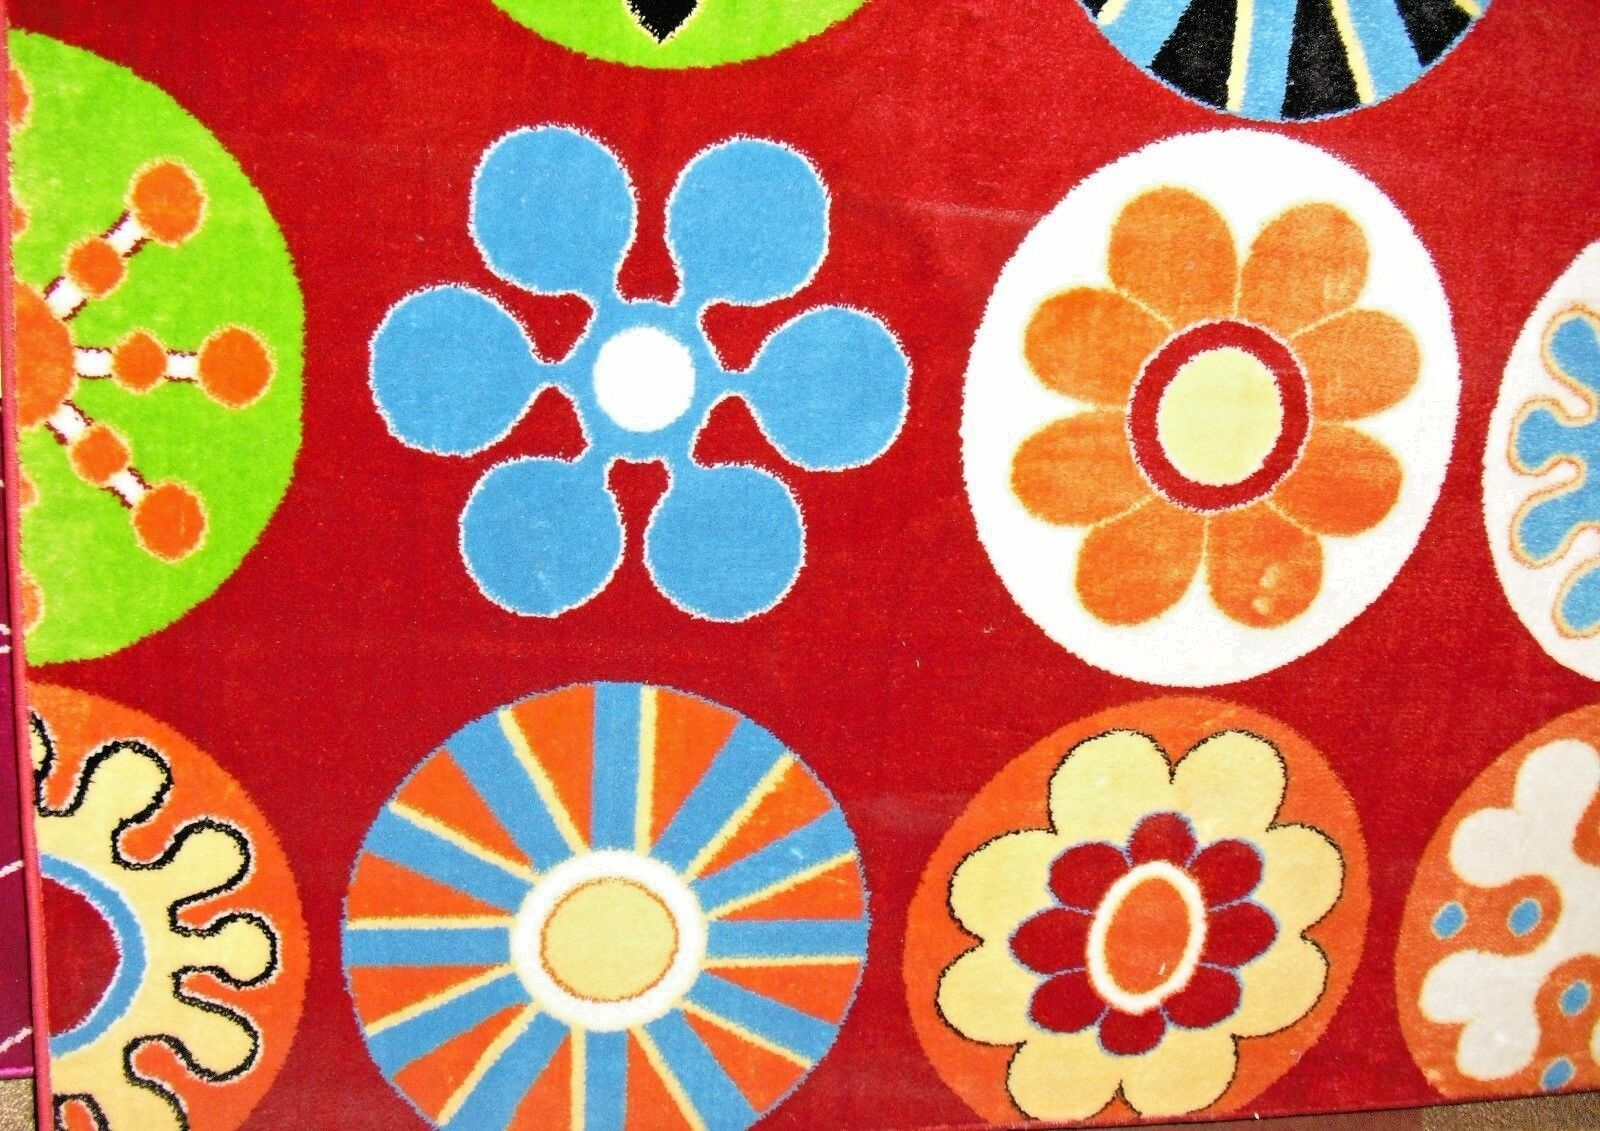 Rugs For Children's Rooms Kids Rugs Kids Area Rug Childrens Rugs Playroom Rugs For